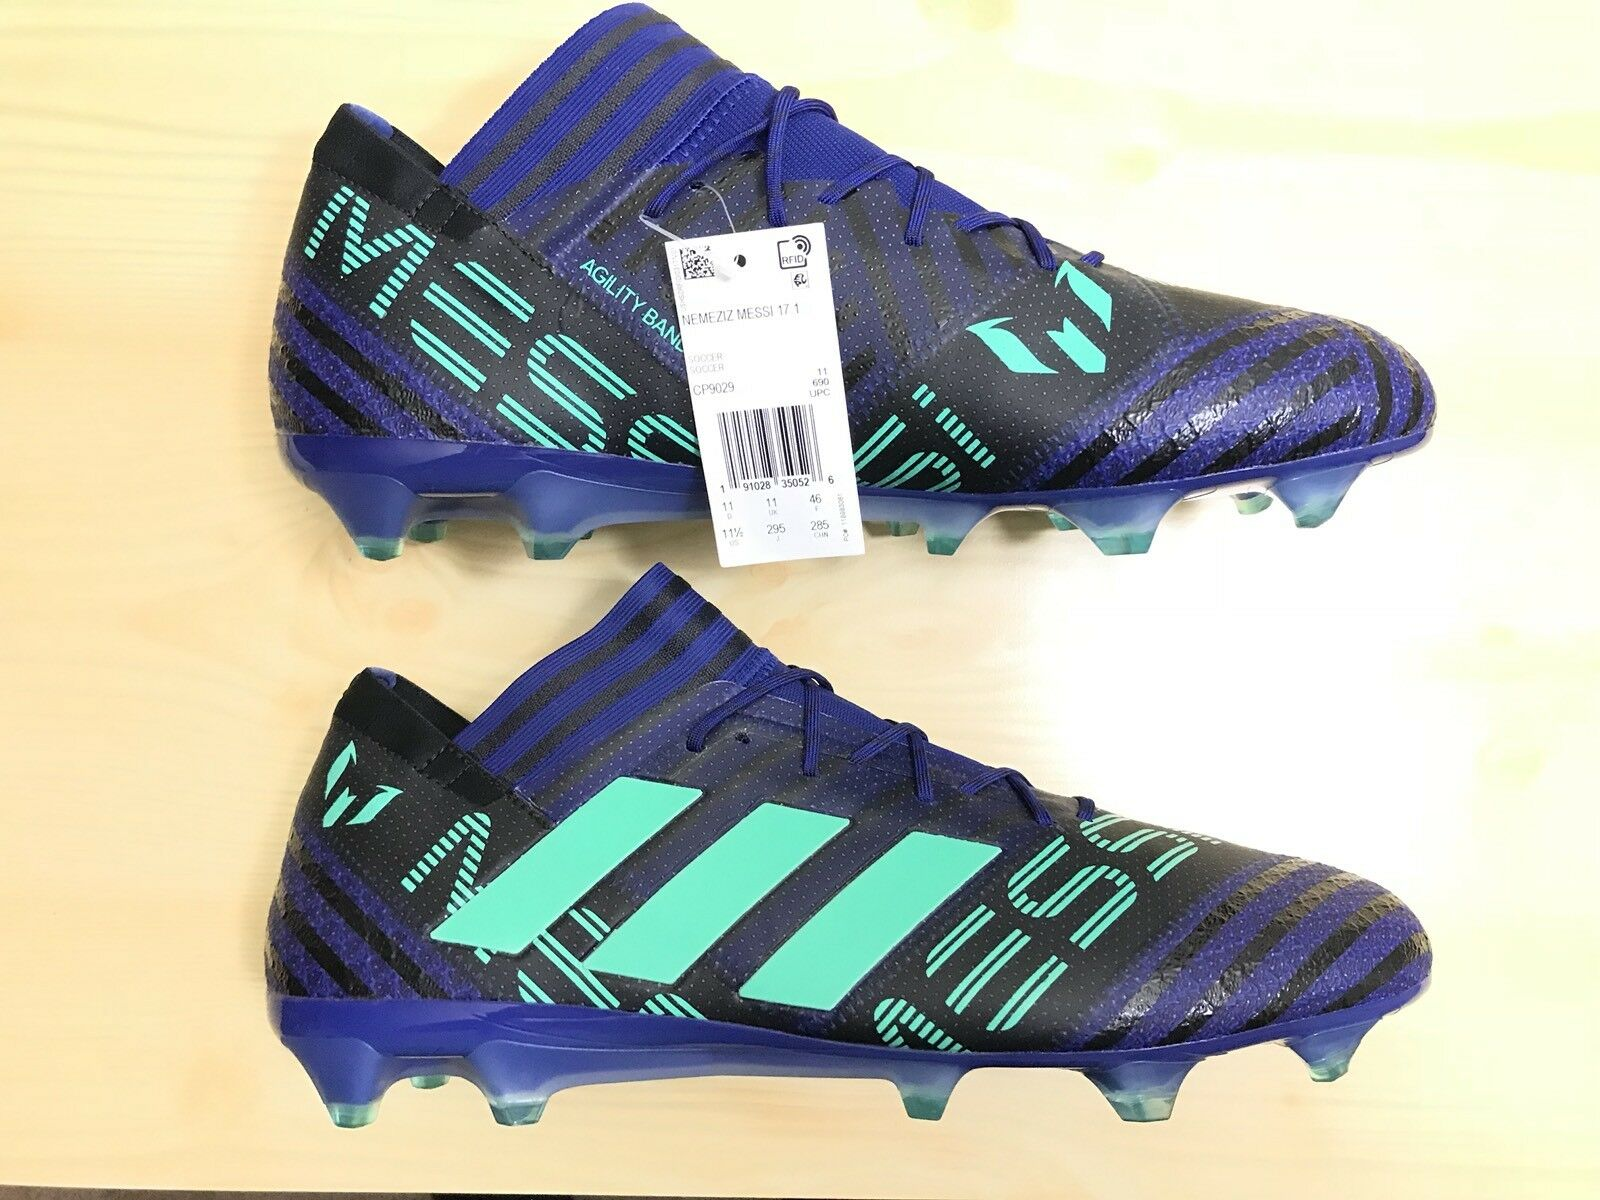 New Adidas Nemeziz Messi 17.1 FG Men's Soccer Cleats  CP9029  bluee Green Sz 11.5